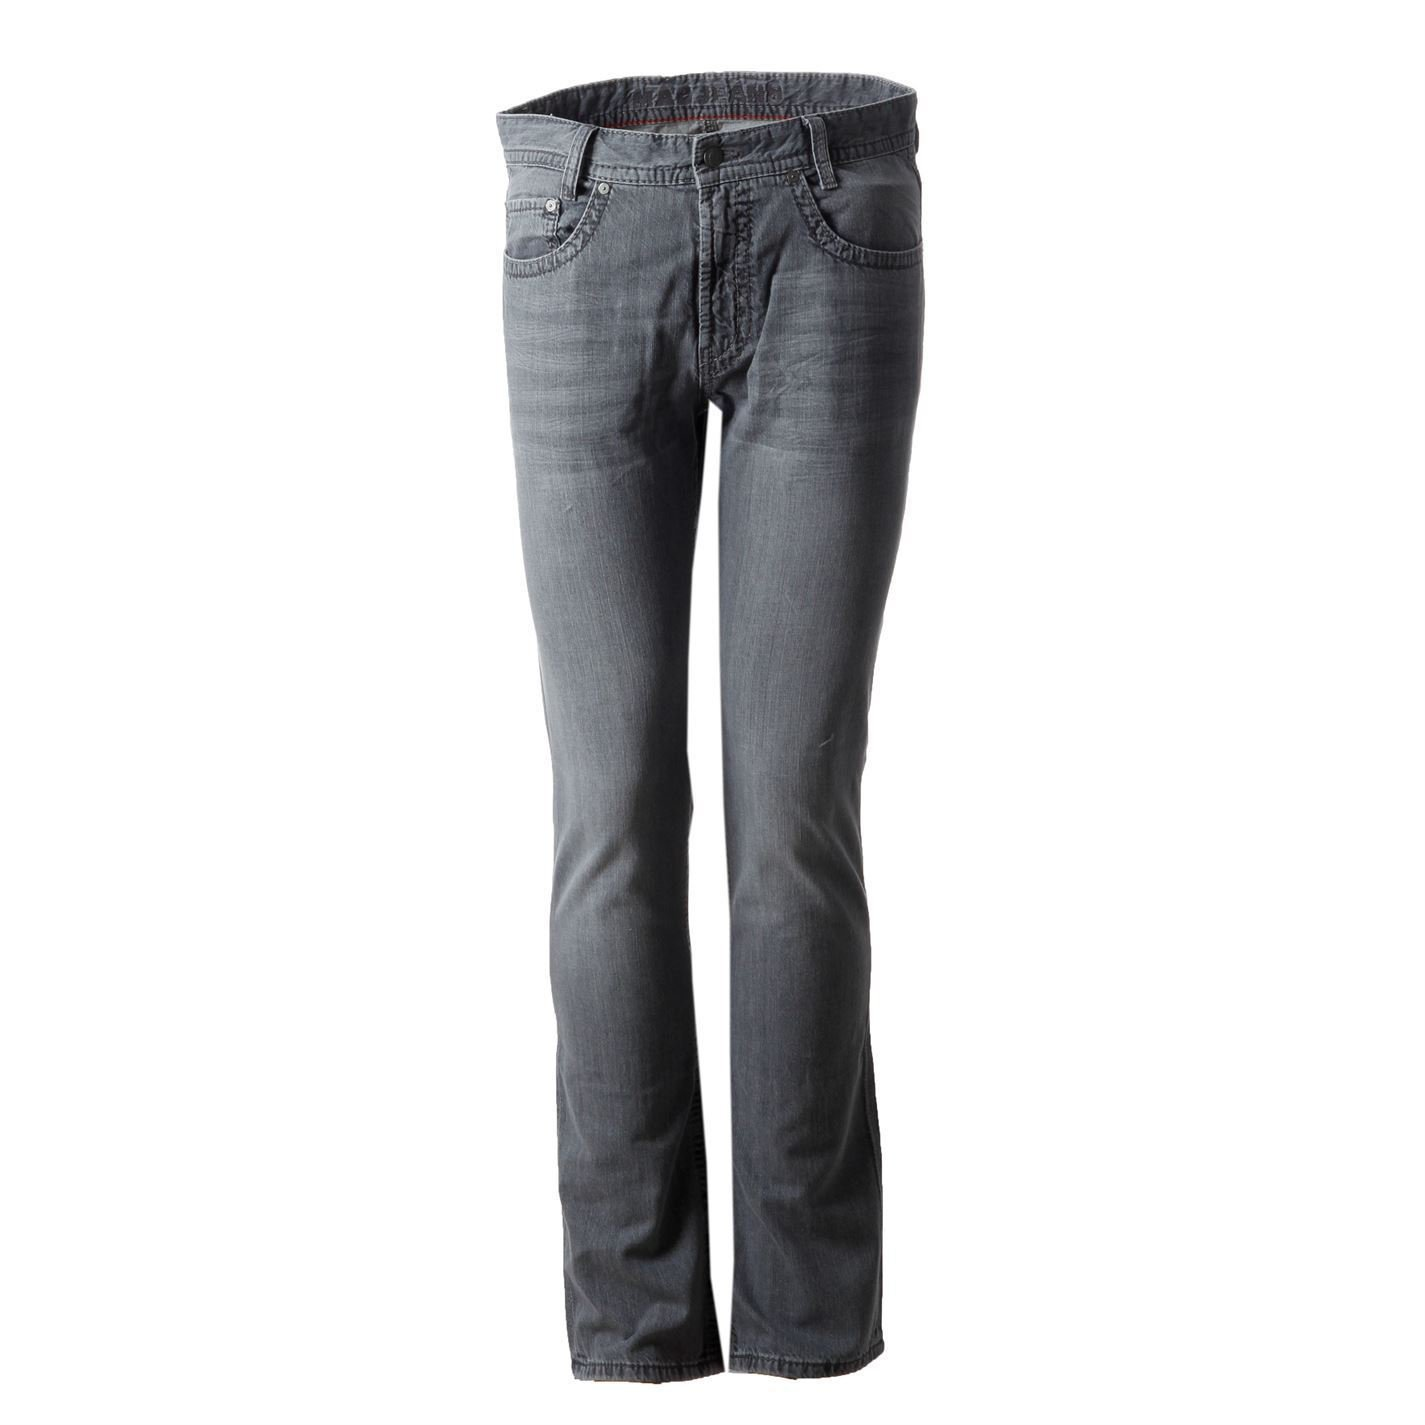 Mac Mens Arne Jeans Casual Everyday Denim Pants Trousers Bottoms